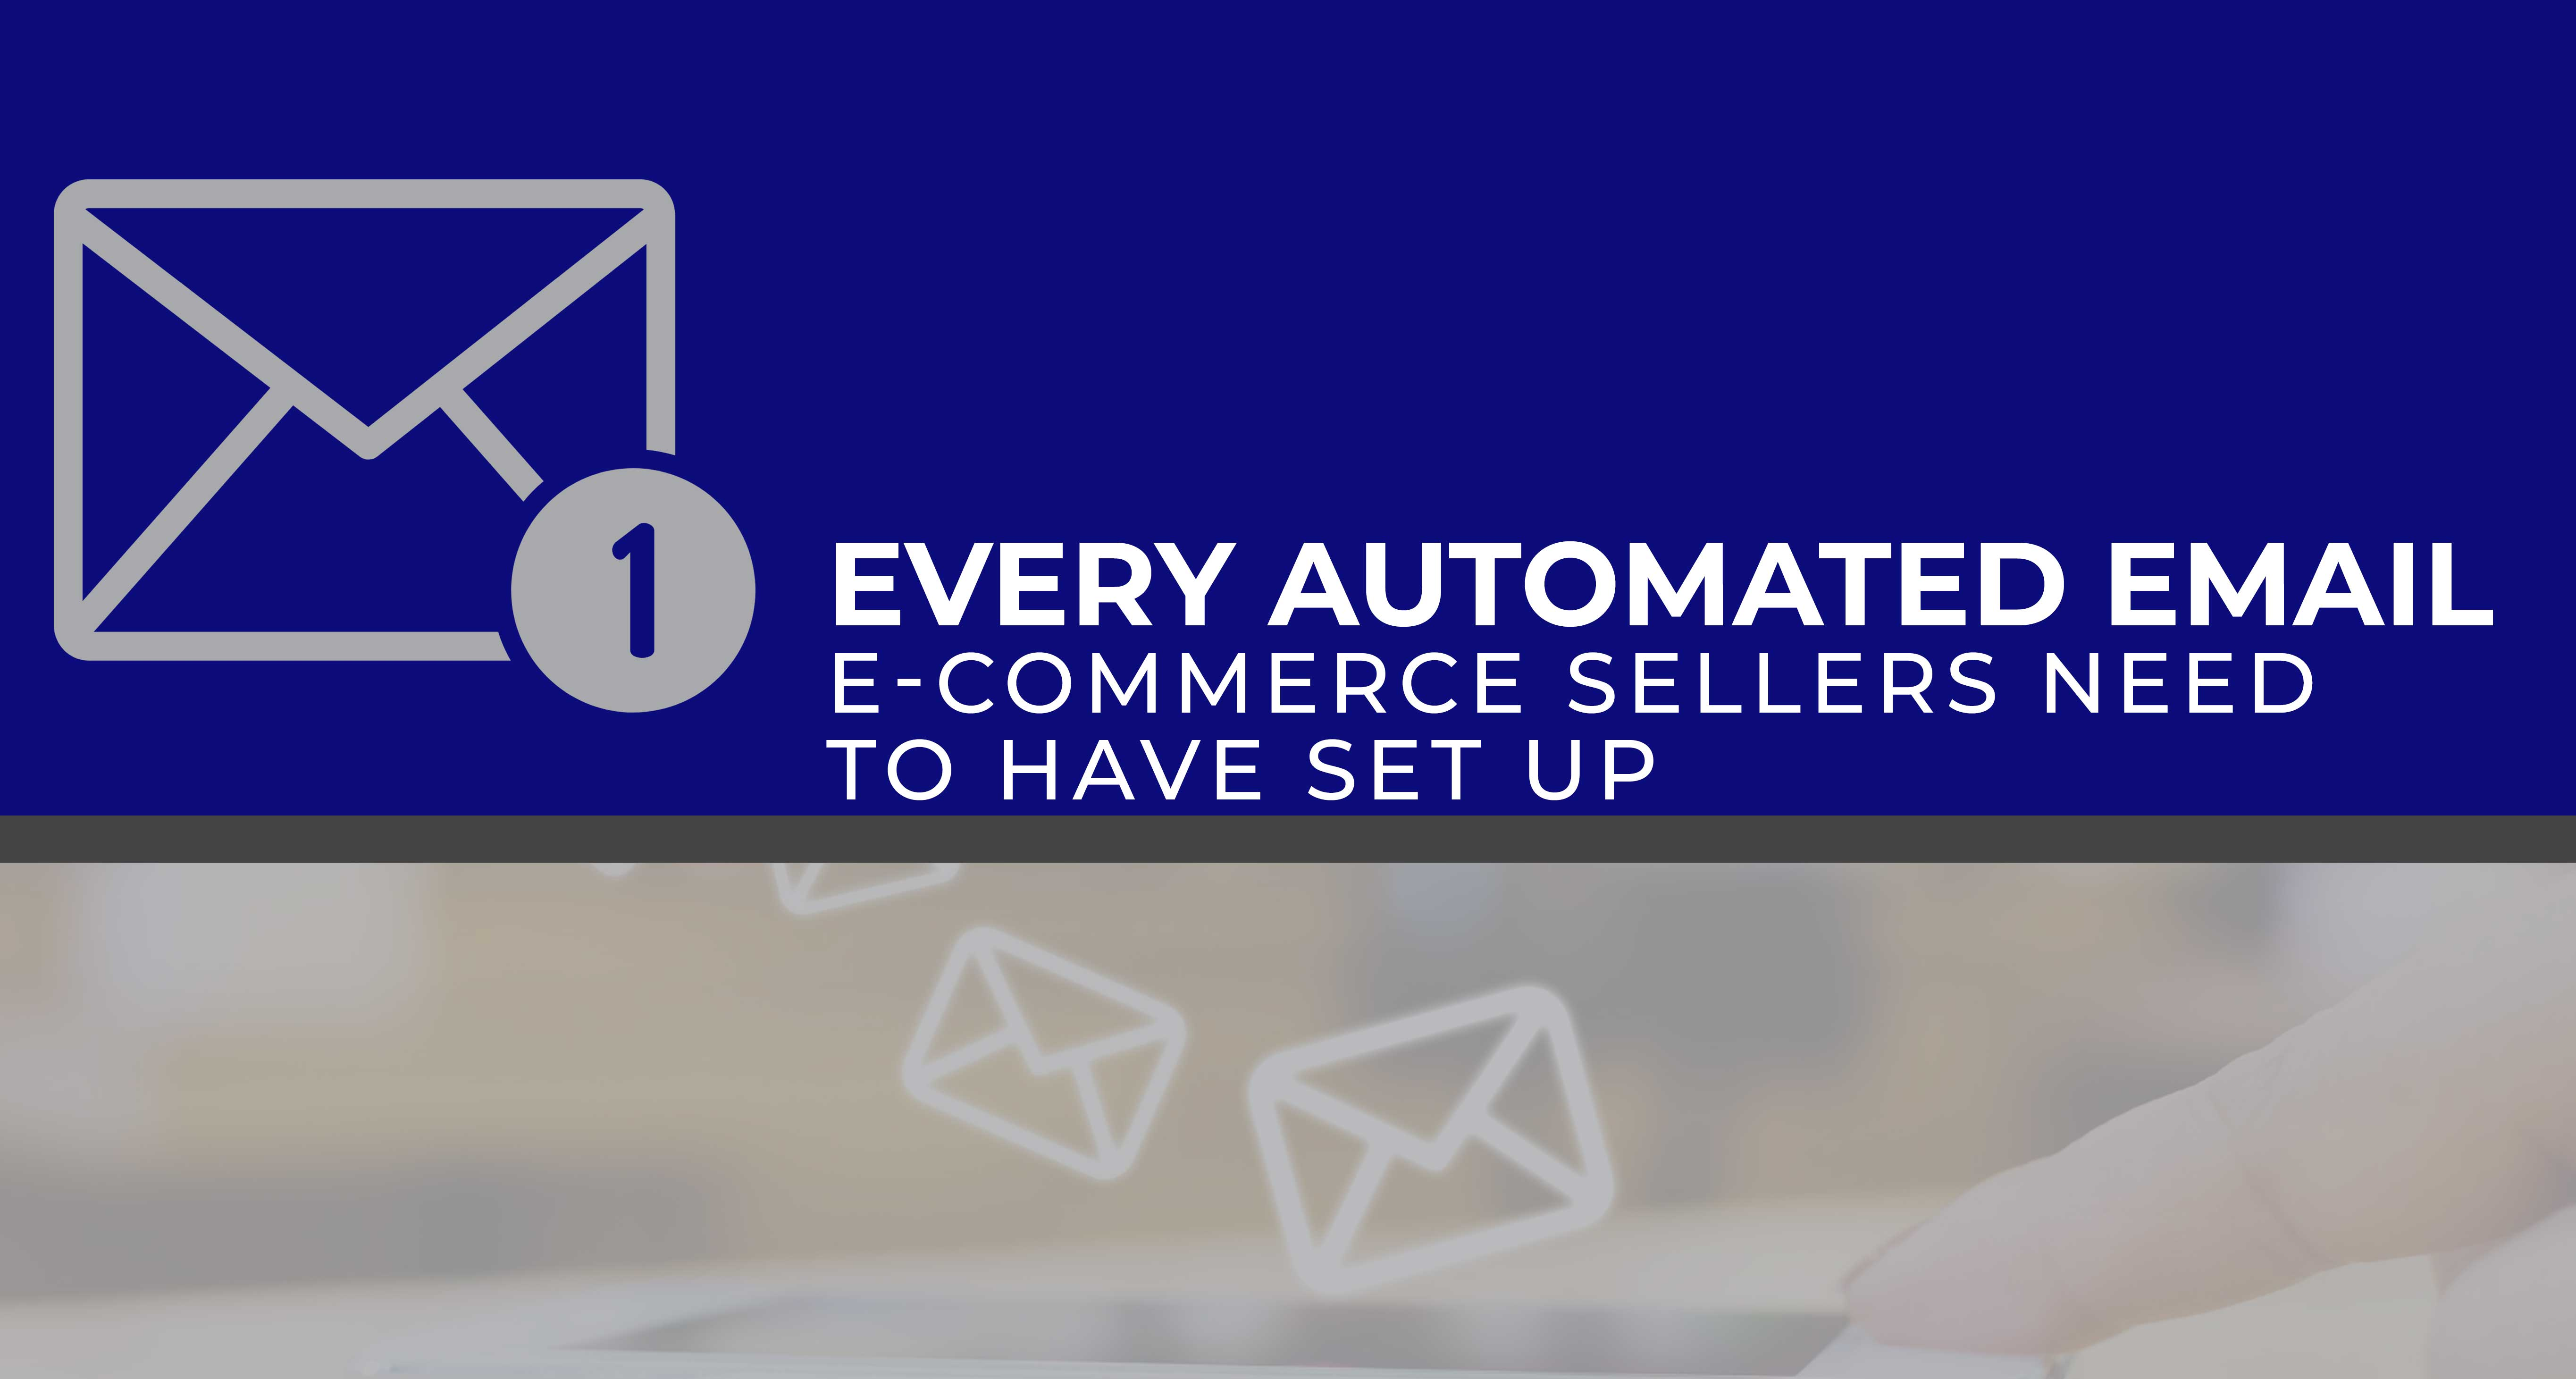 Every Automated Email E-commerce Sellers Need to Have Set Up